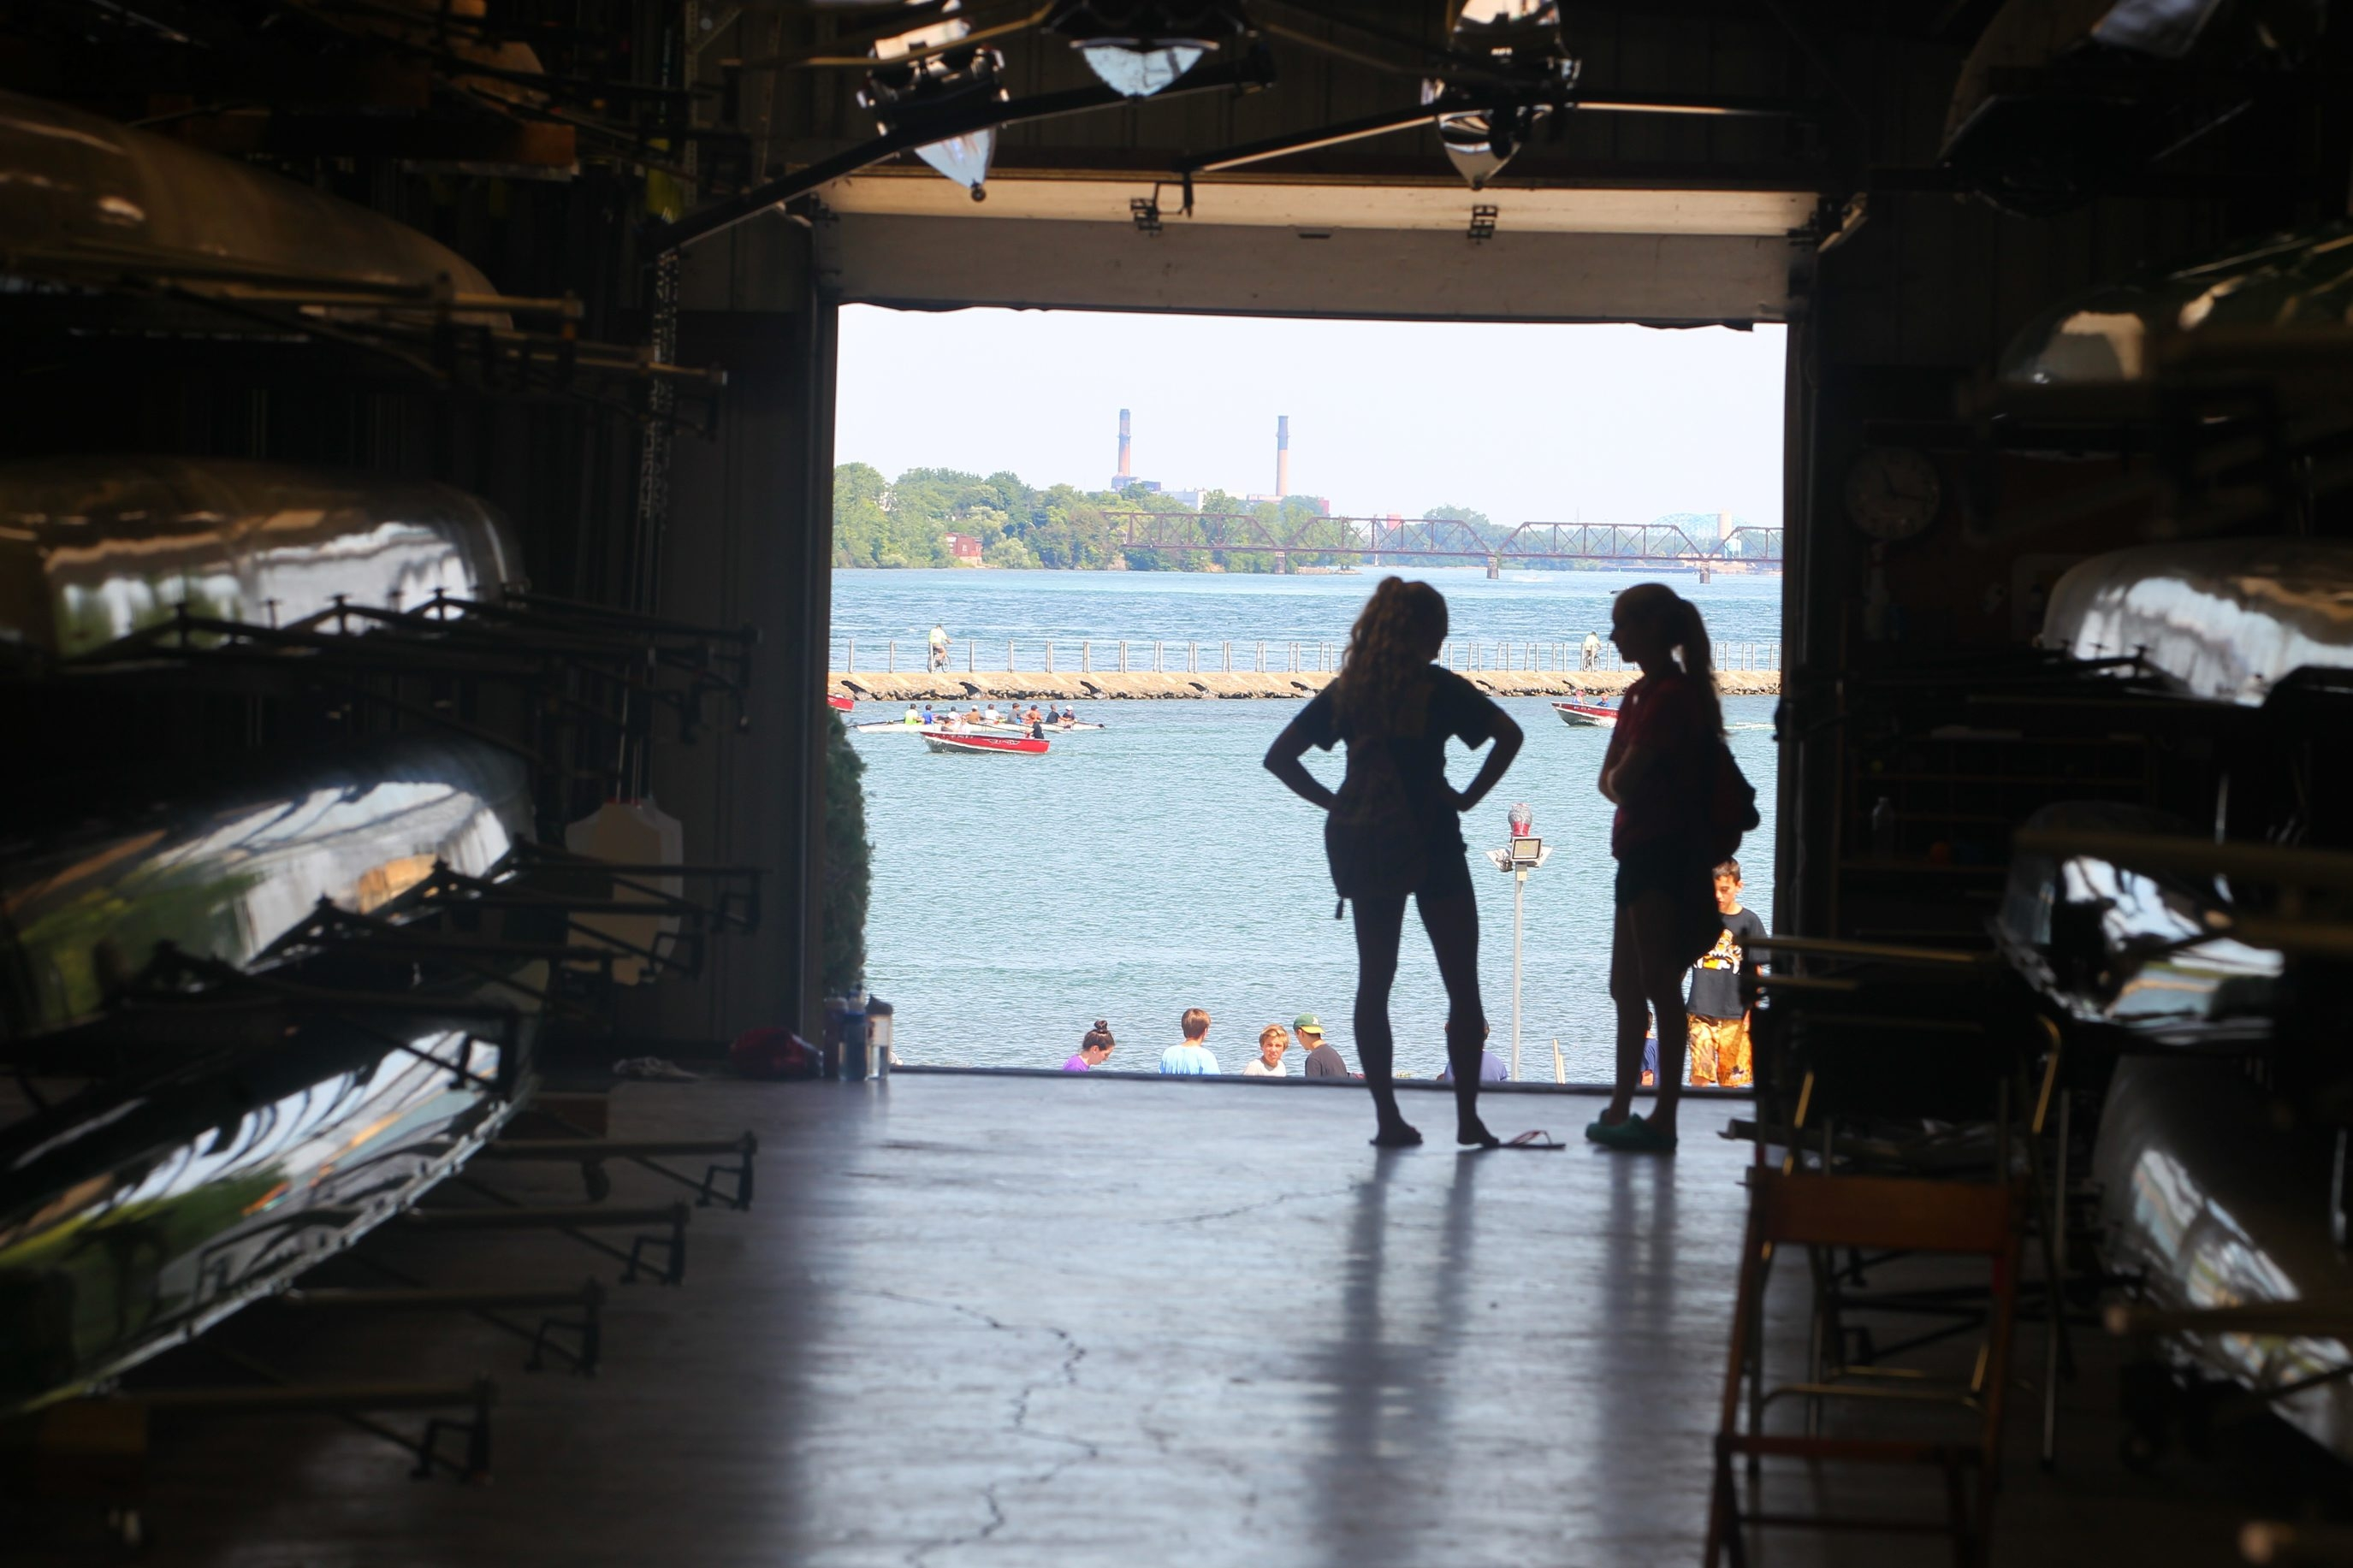 The sun silhouettes rowers in the Doc Schaab Boat House at the West Side Rowing Club in Buffalo on July 20, 2016.